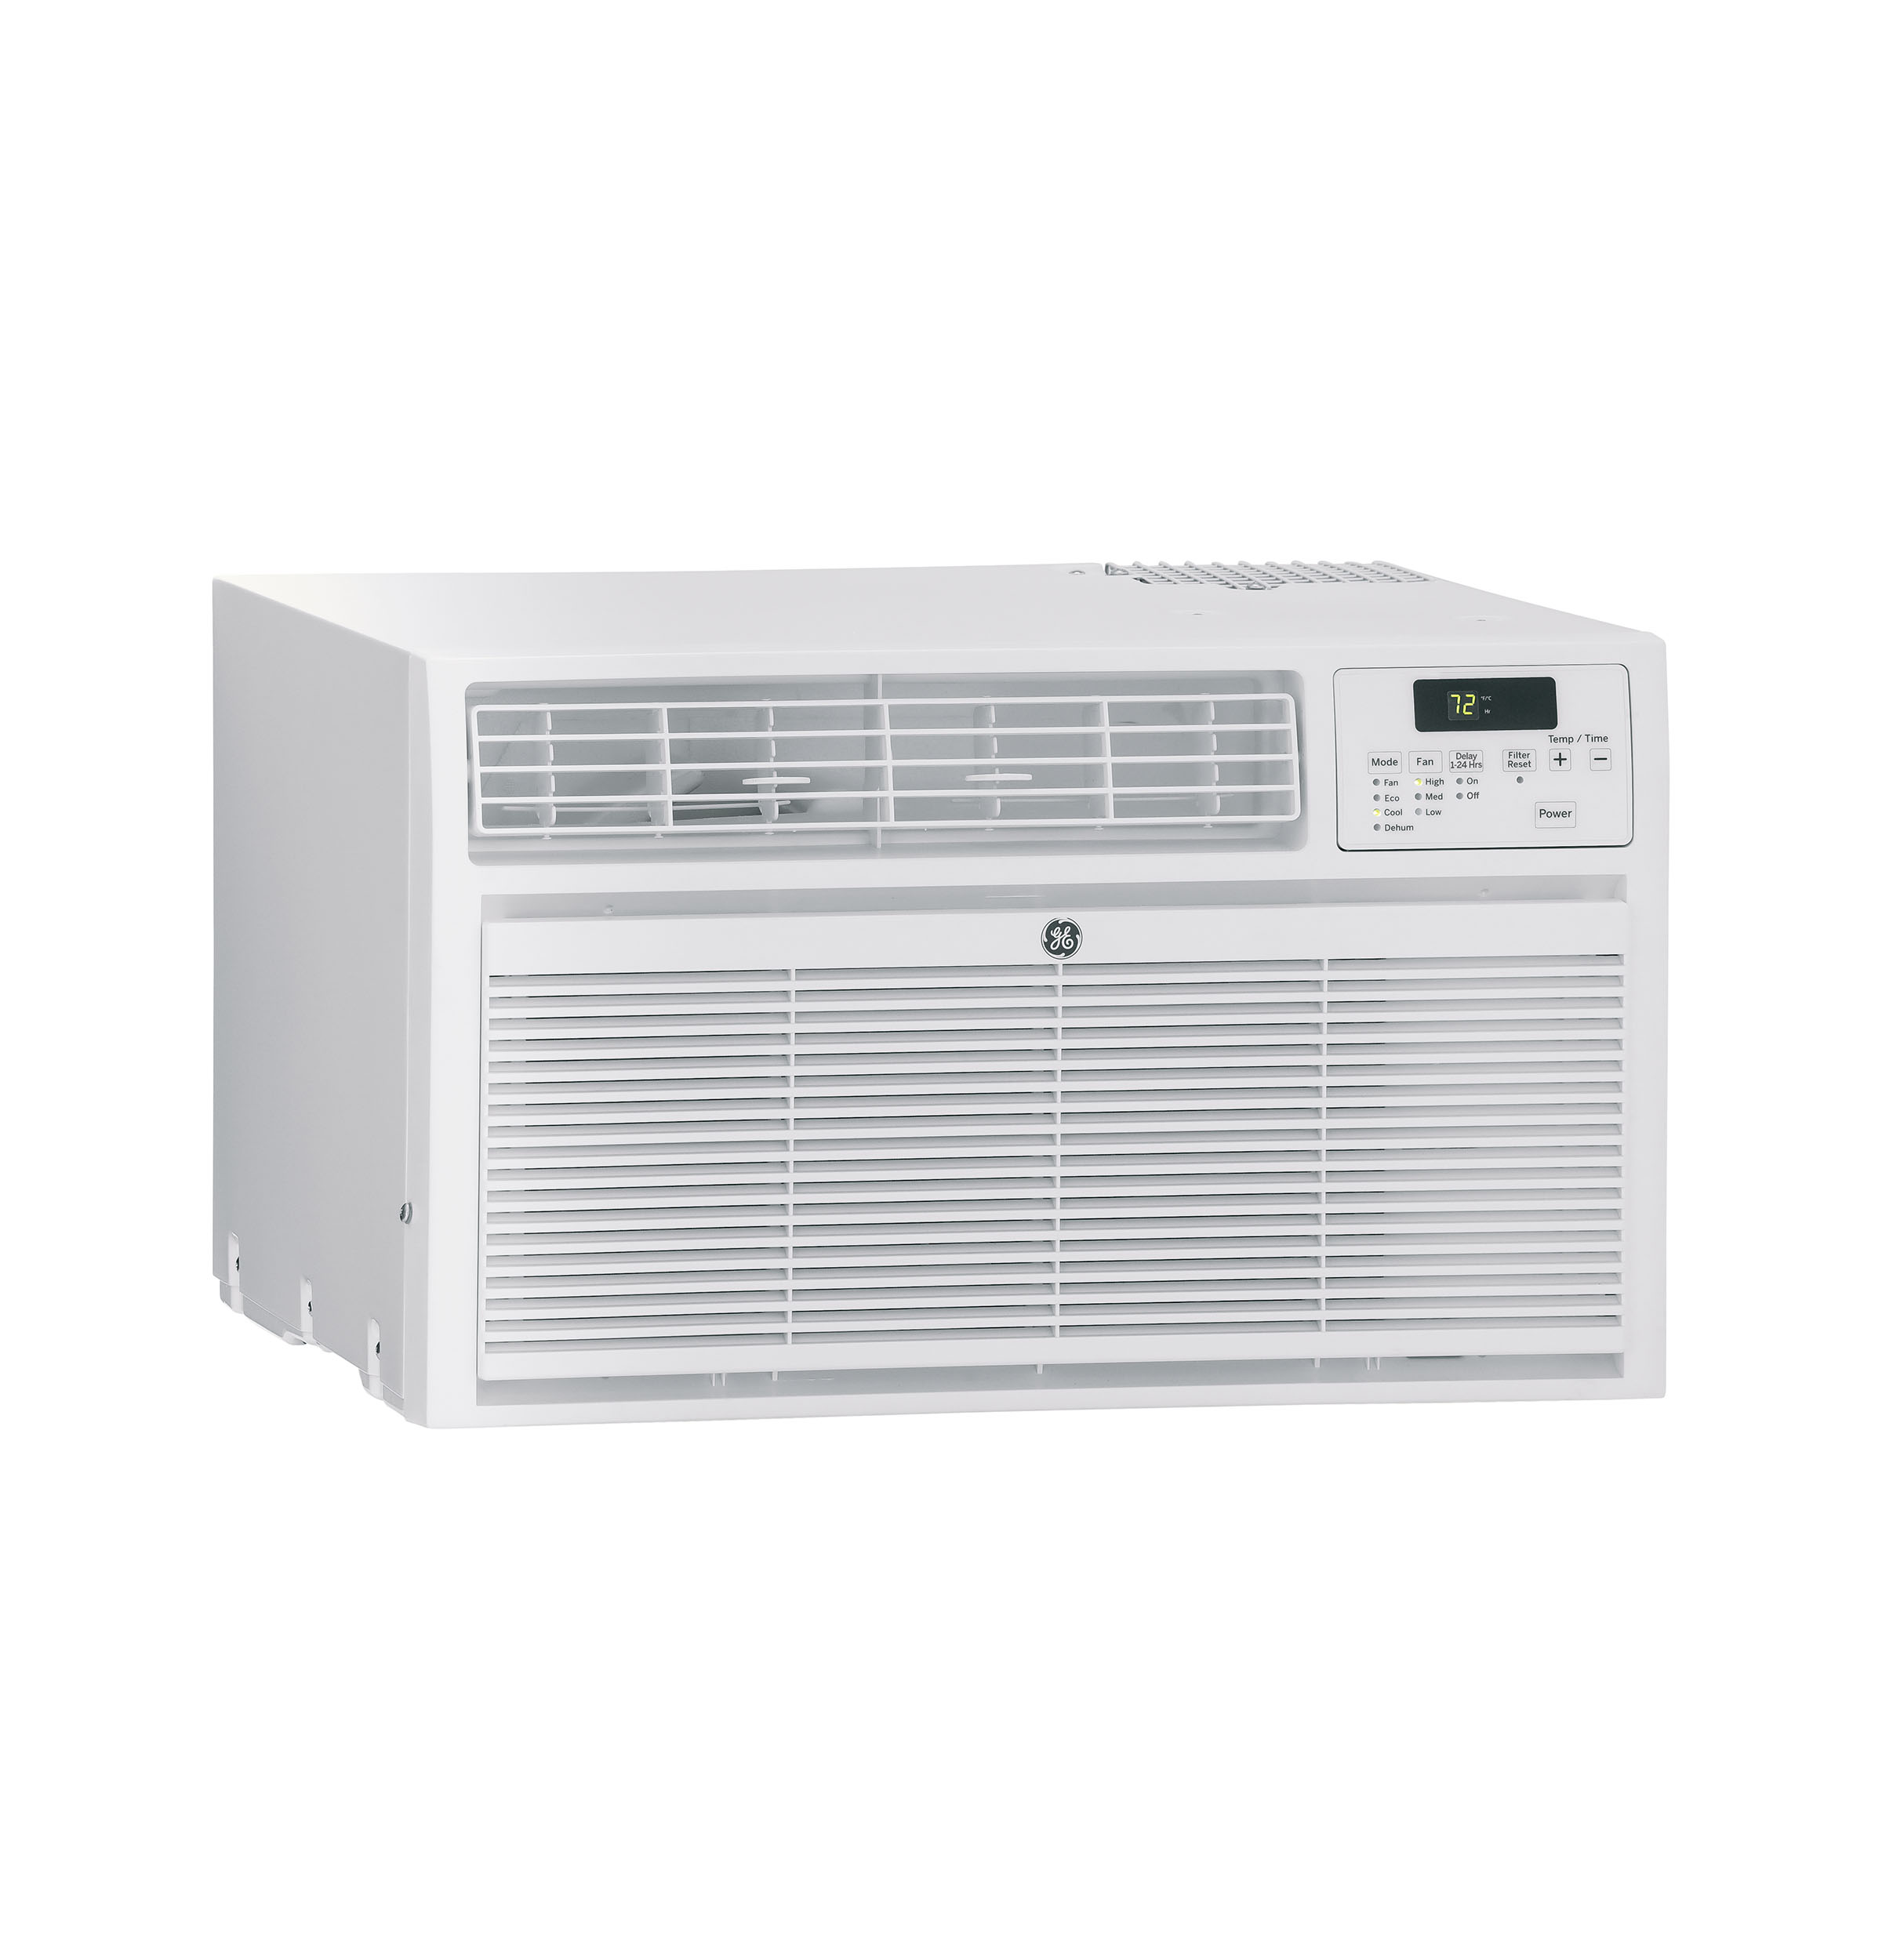 Model: AKCQ12ACA | GE GE® Built In Air Conditioner